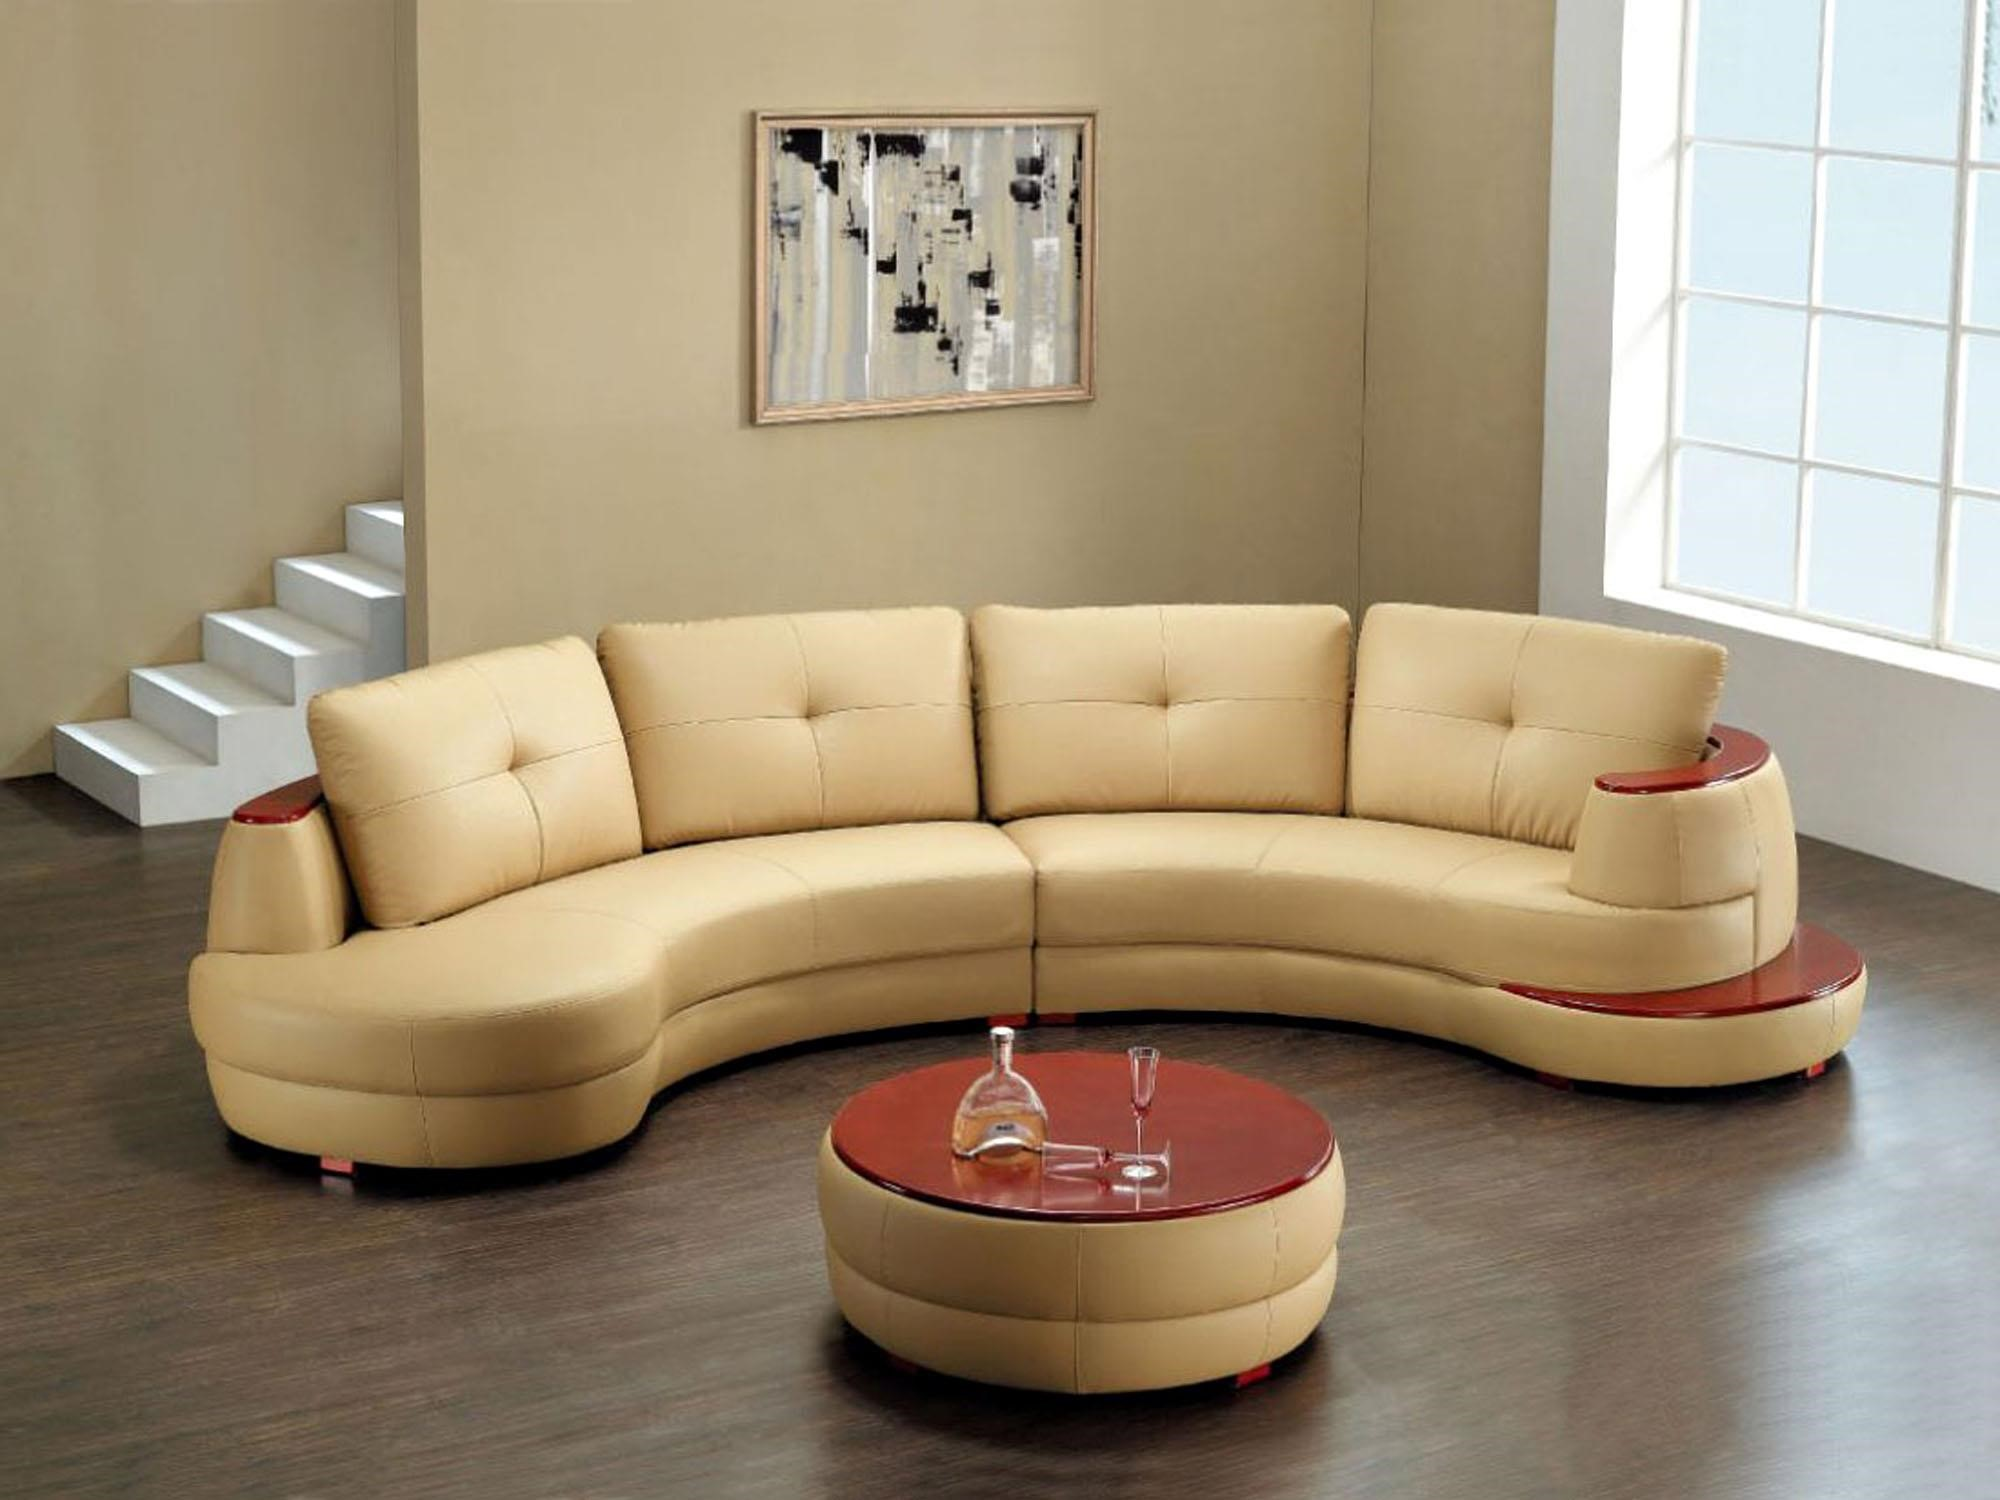 Cute Couch Covers with Cushions for Sectionals  for Living Room: Round Sectional Sofa Covers